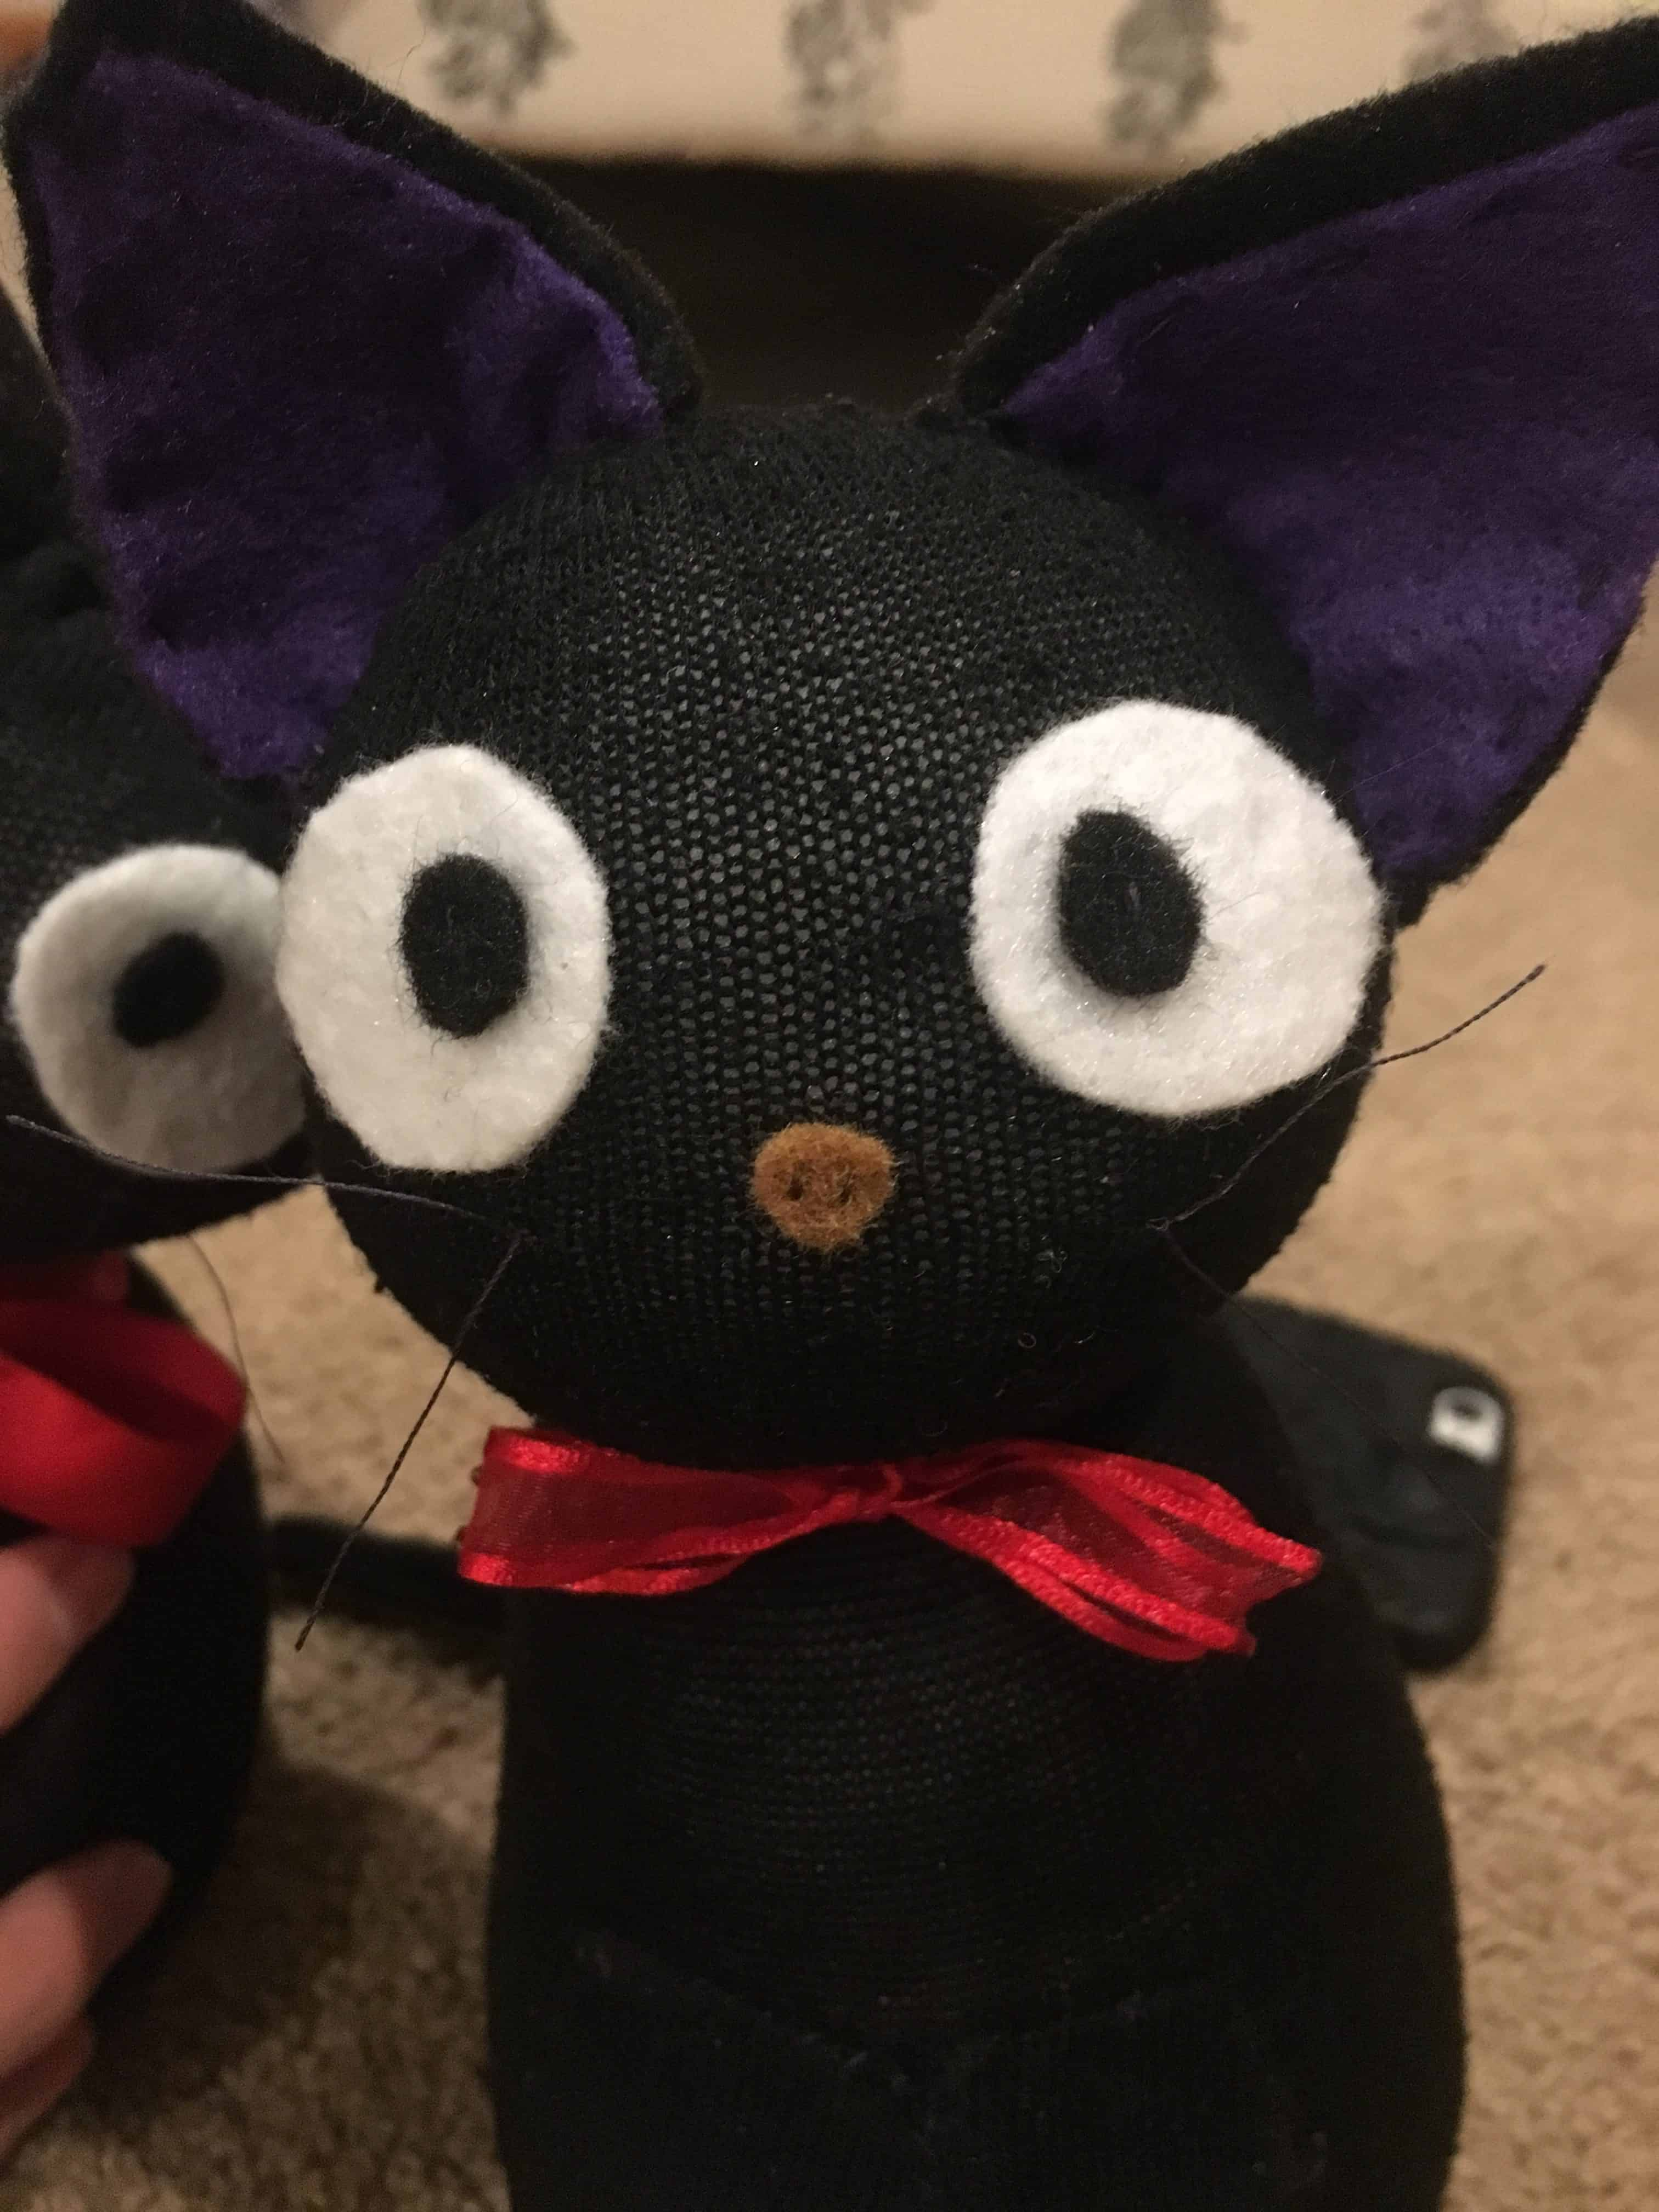 Kiki S Delivery Service Jiji Cat Plush Out Of A Sock